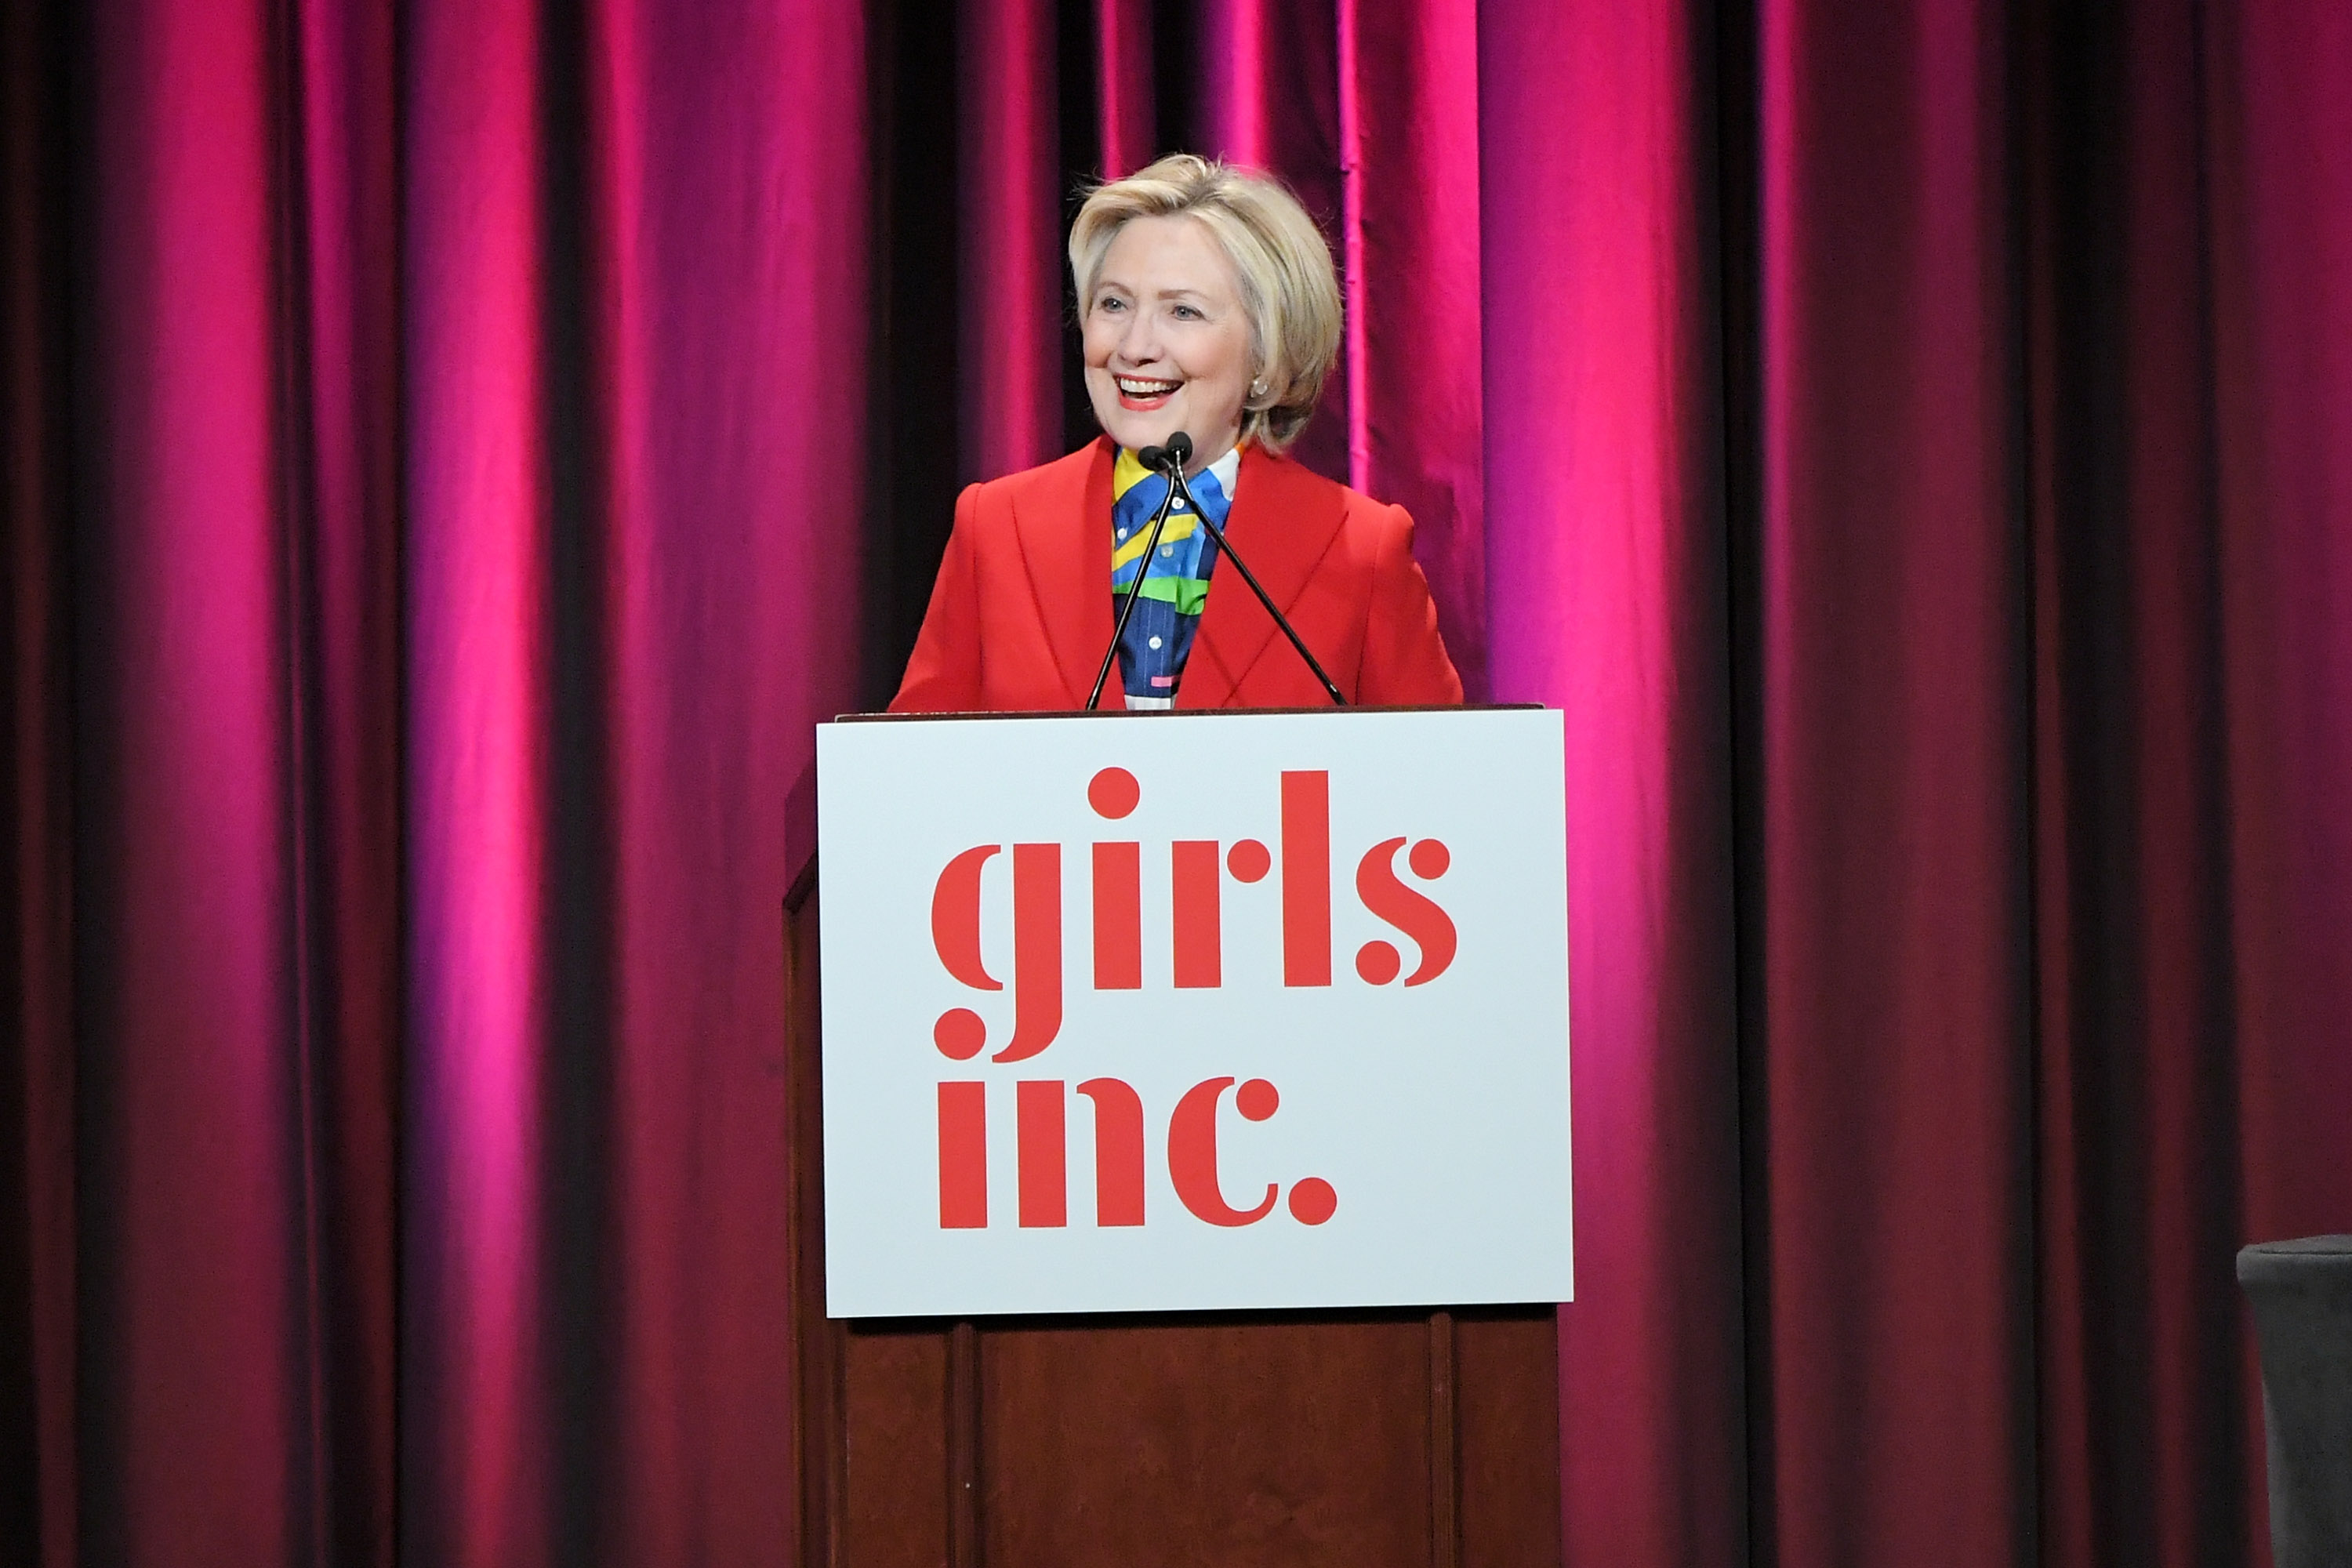 NEW YORK, NY - MARCH 07:  Hillary Clinton speaks onstage during the 2017 Girls Inc. New York luncheon celebrating women of achievement at New York Marriott Marquis Hotel on March 7, 2017 in New York City.  (Photo by Mike Coppola/Getty Images)